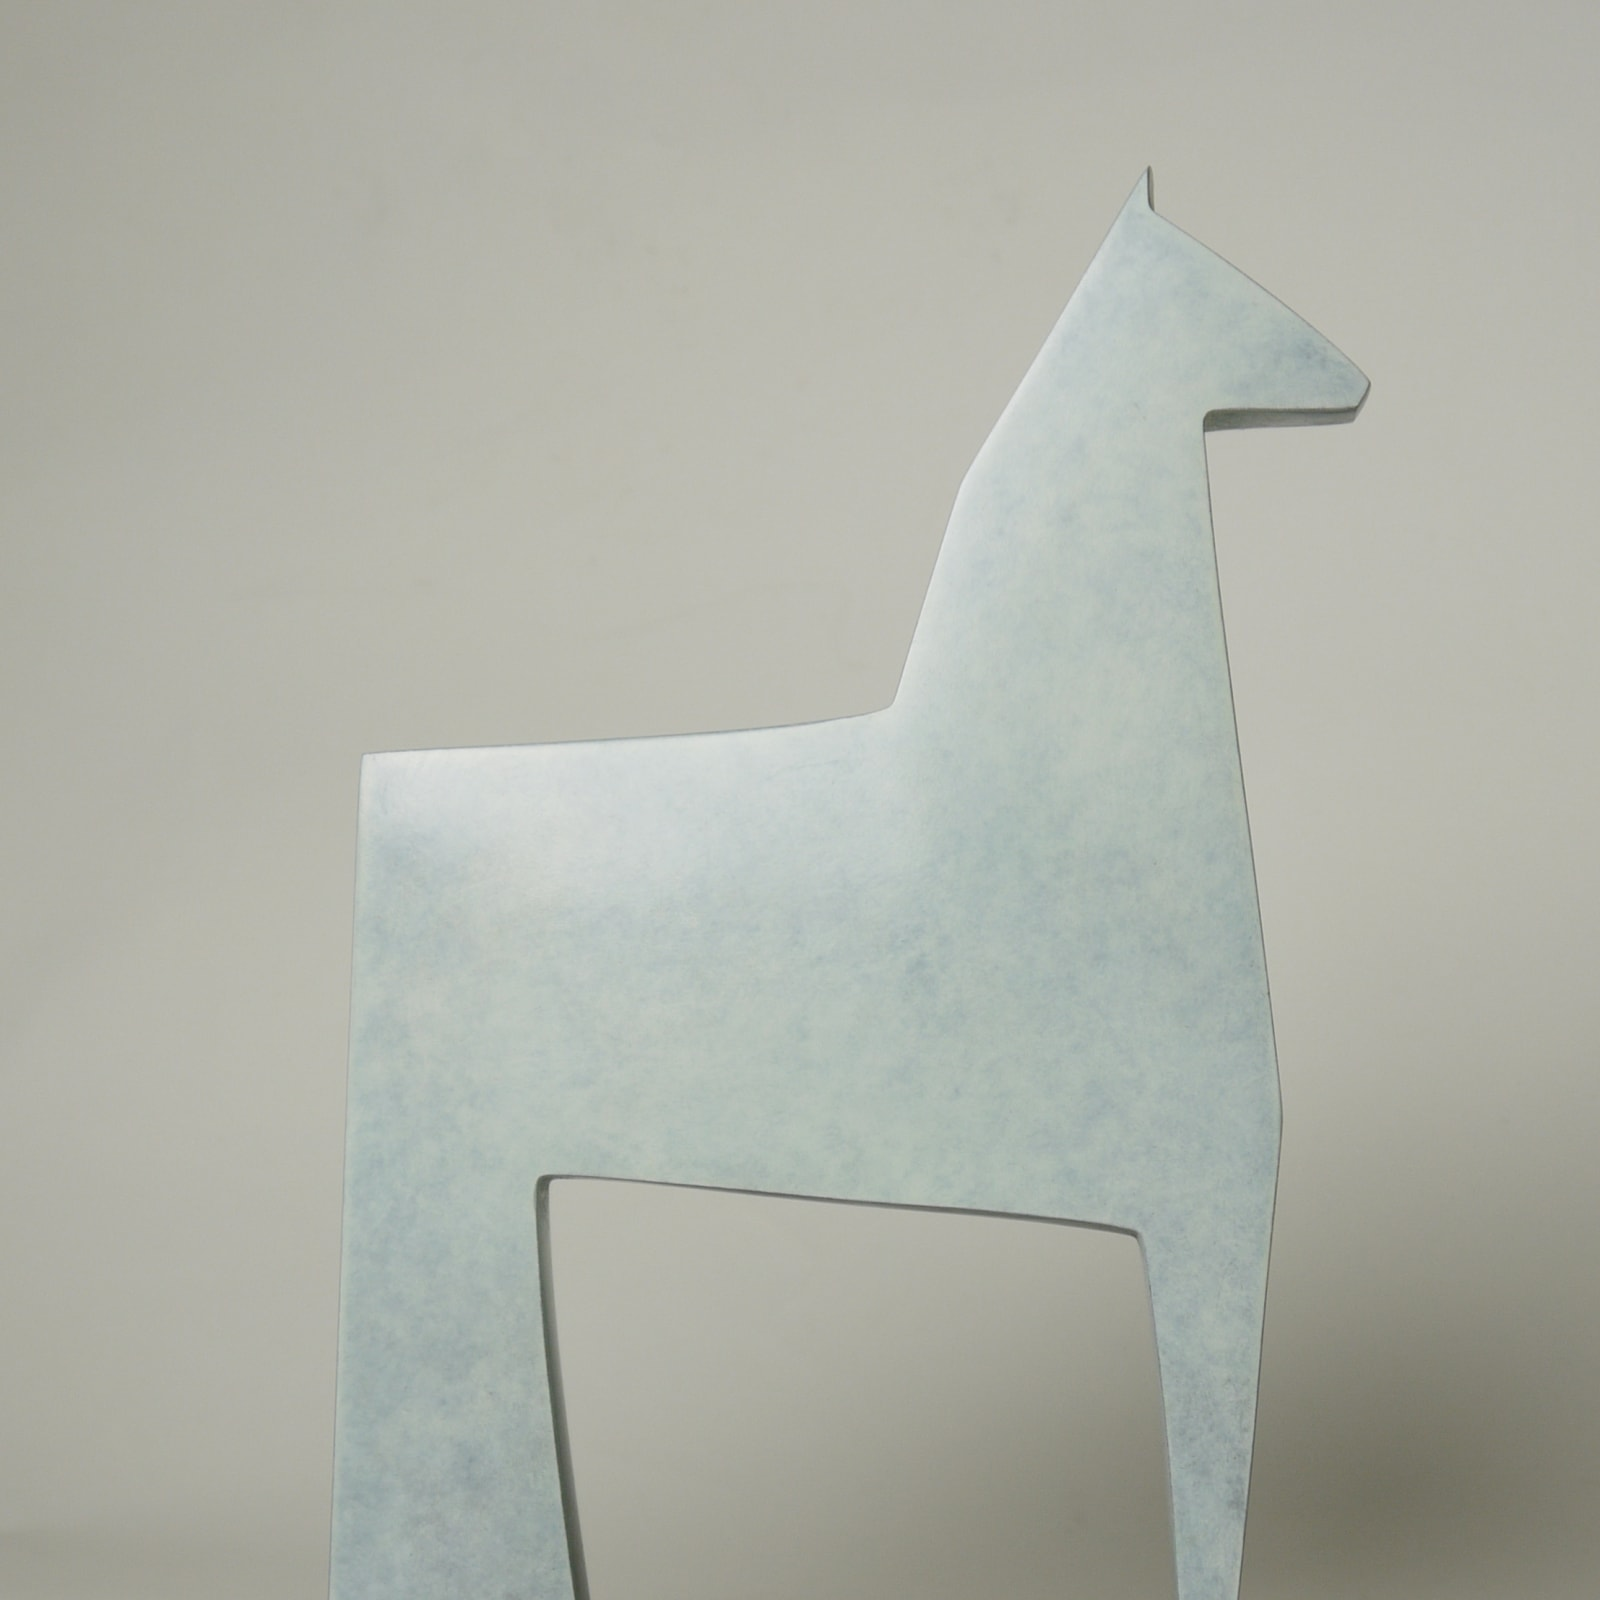 Stephen Page, White Horse, 2018